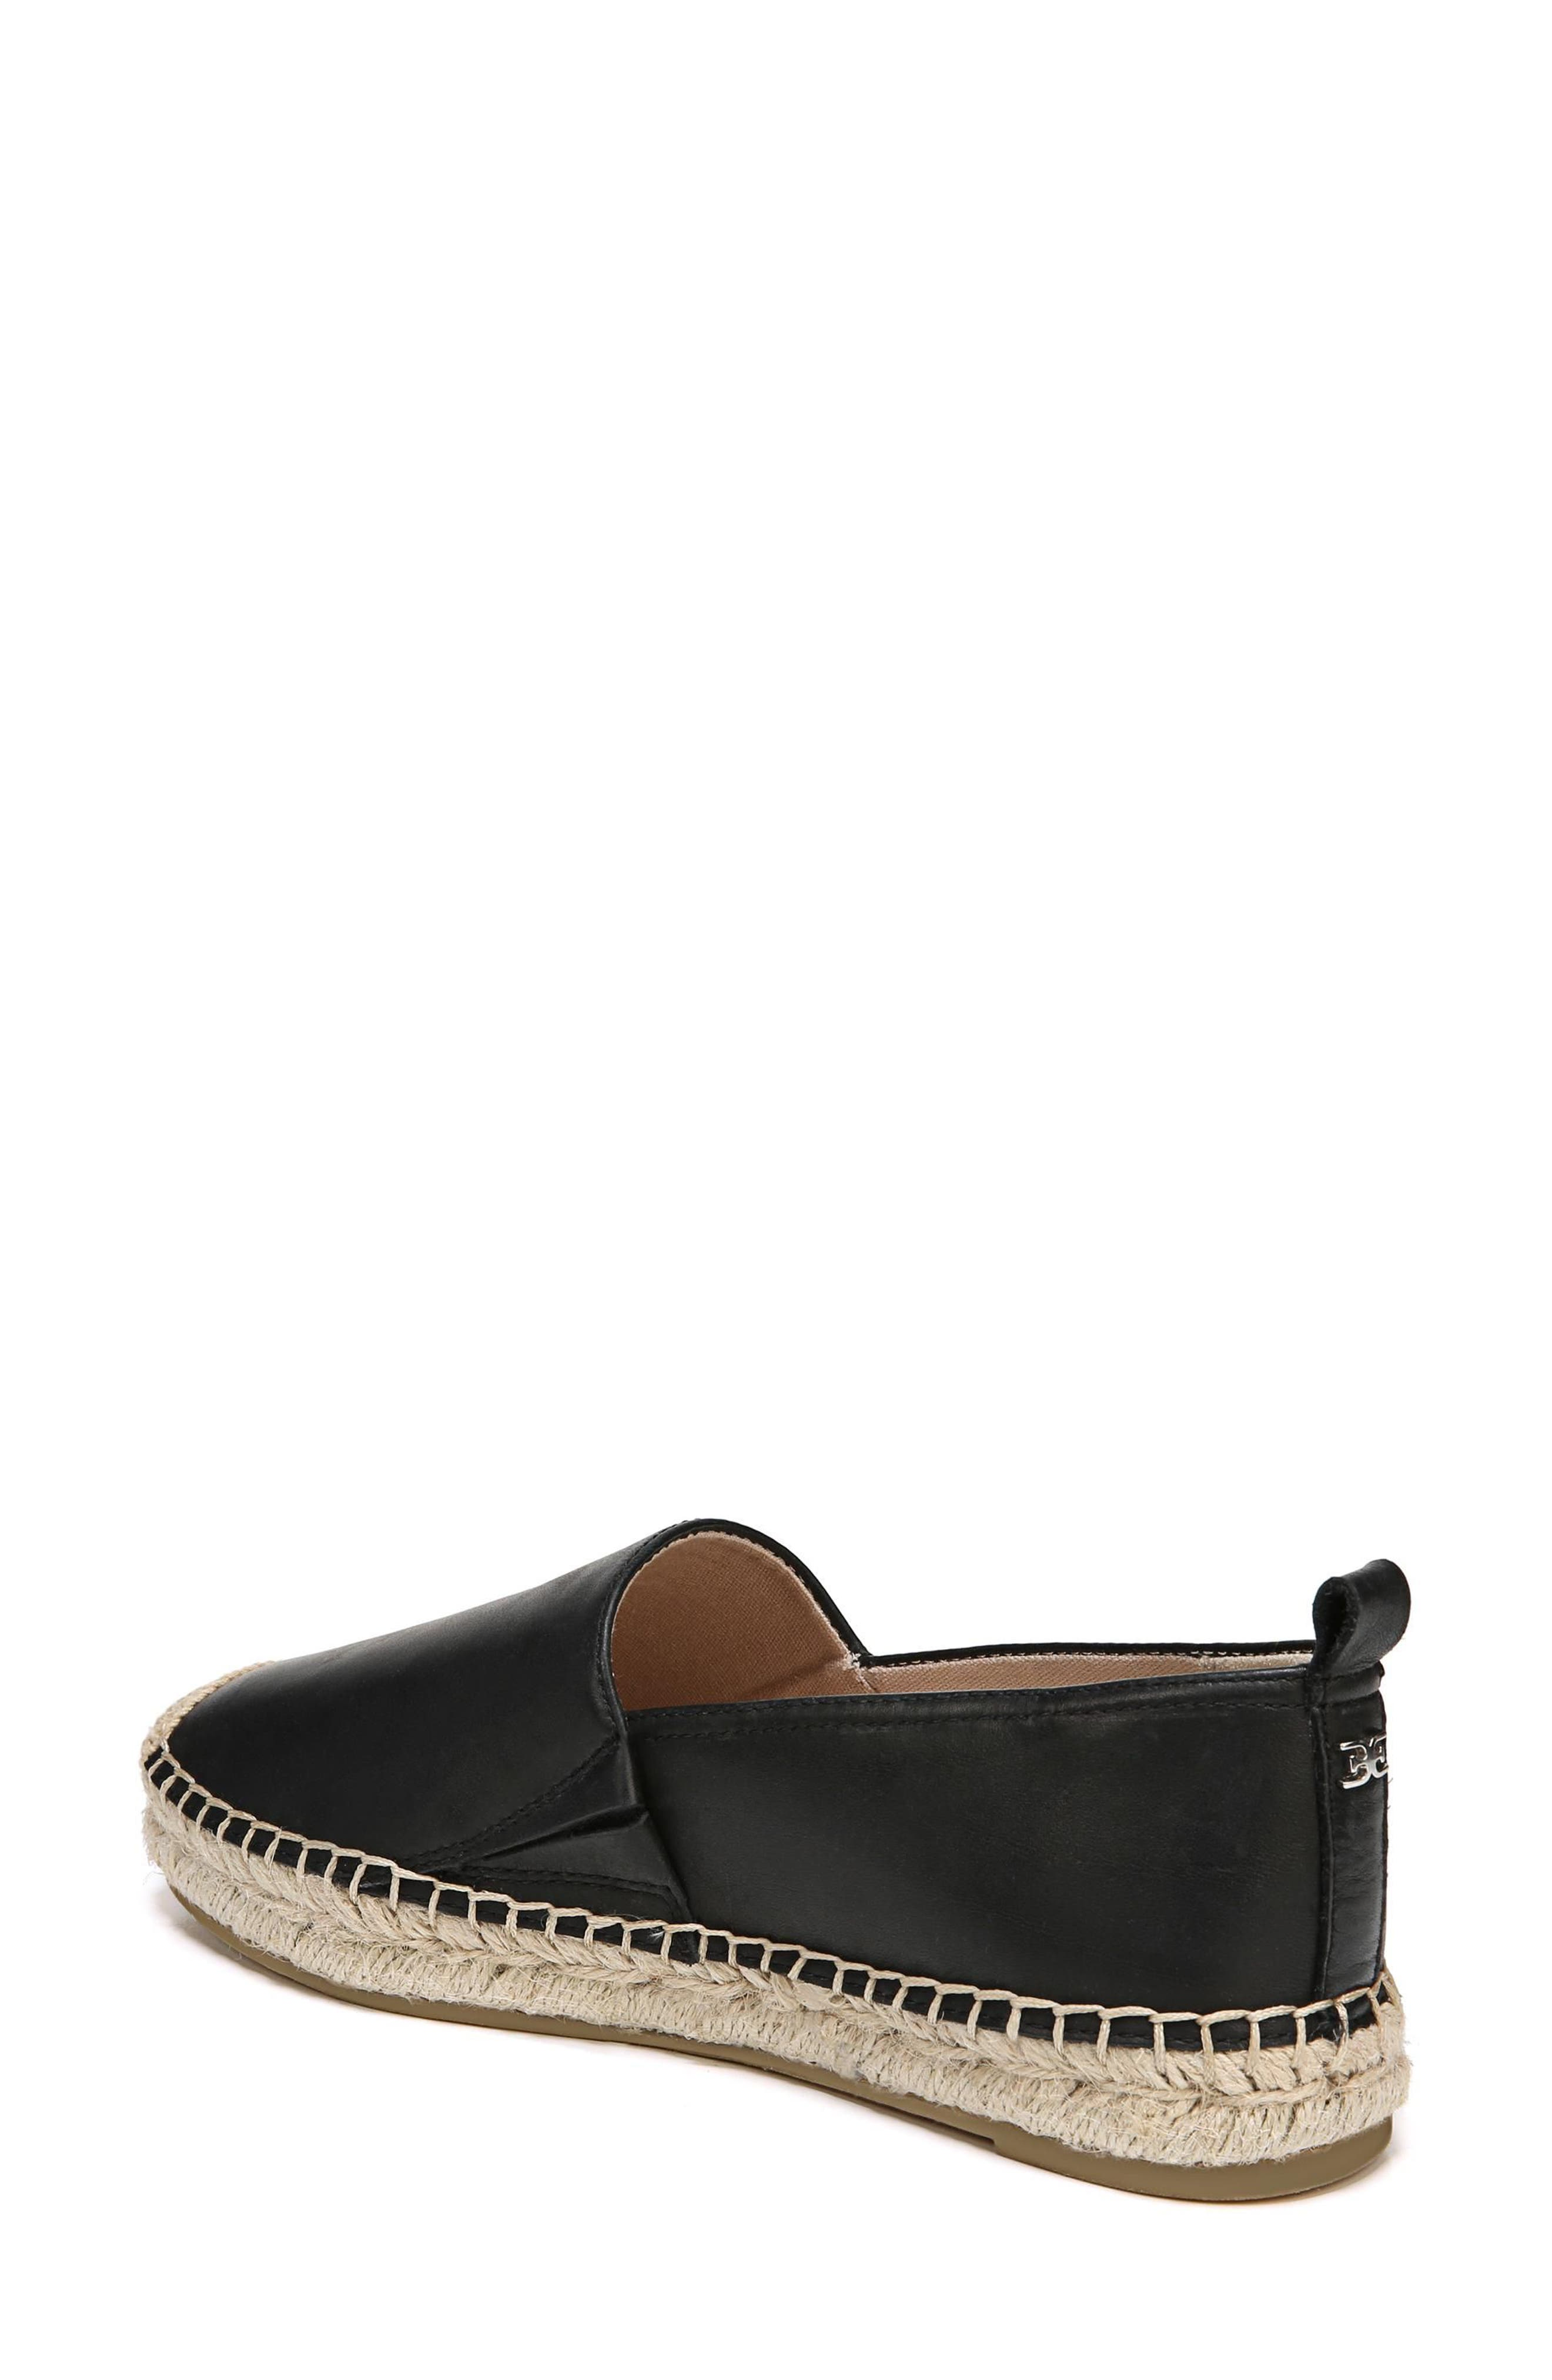 SAM EDELMAN, Khloe Espadrille Flat, Alternate thumbnail 2, color, BLACK LEATHER